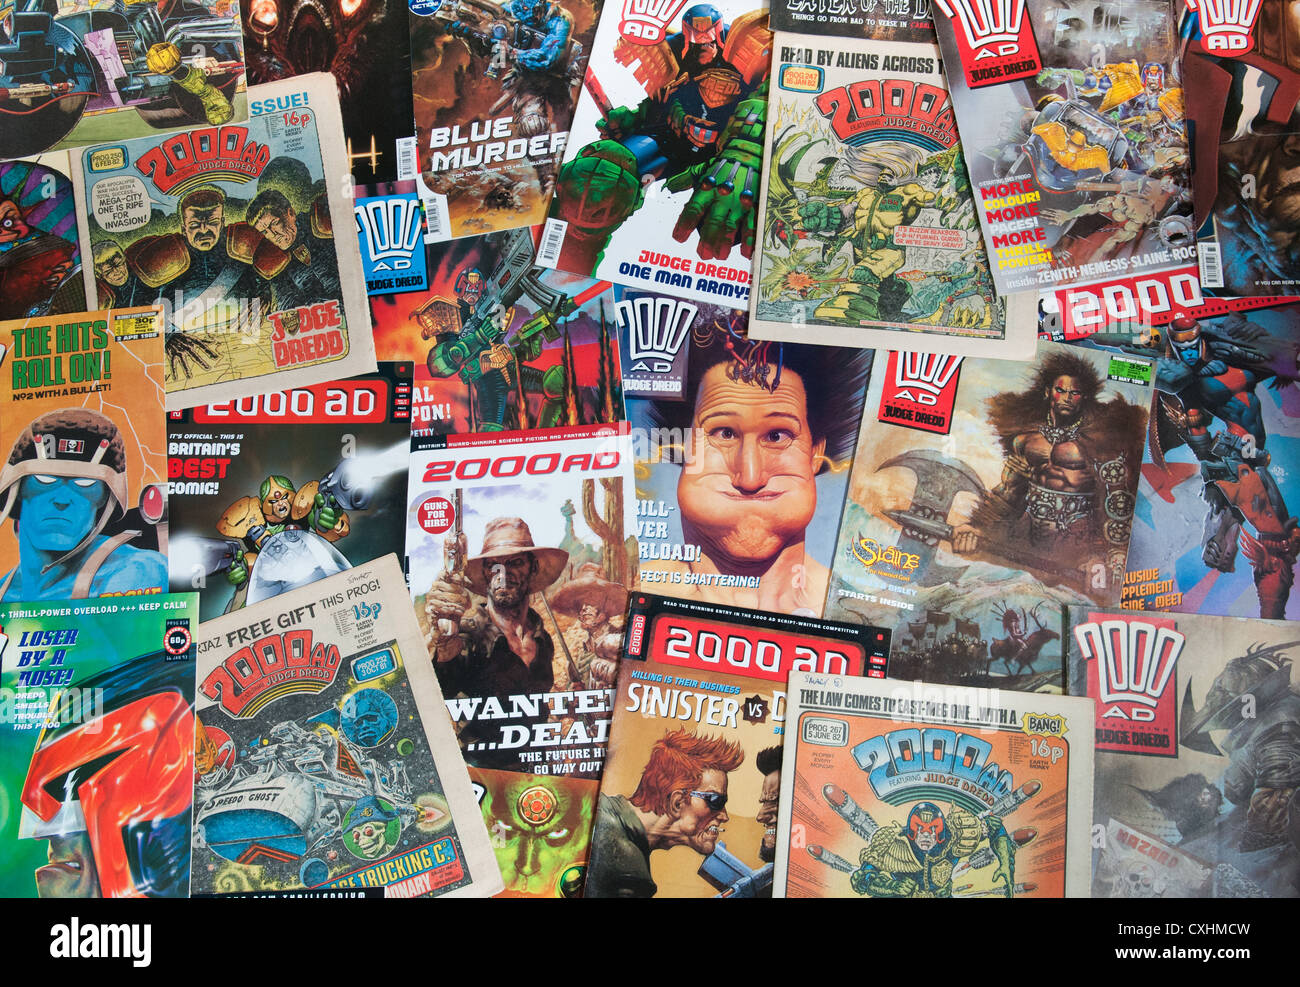 A montage of 2000AD comics dating from the 1980's. - Stock Image